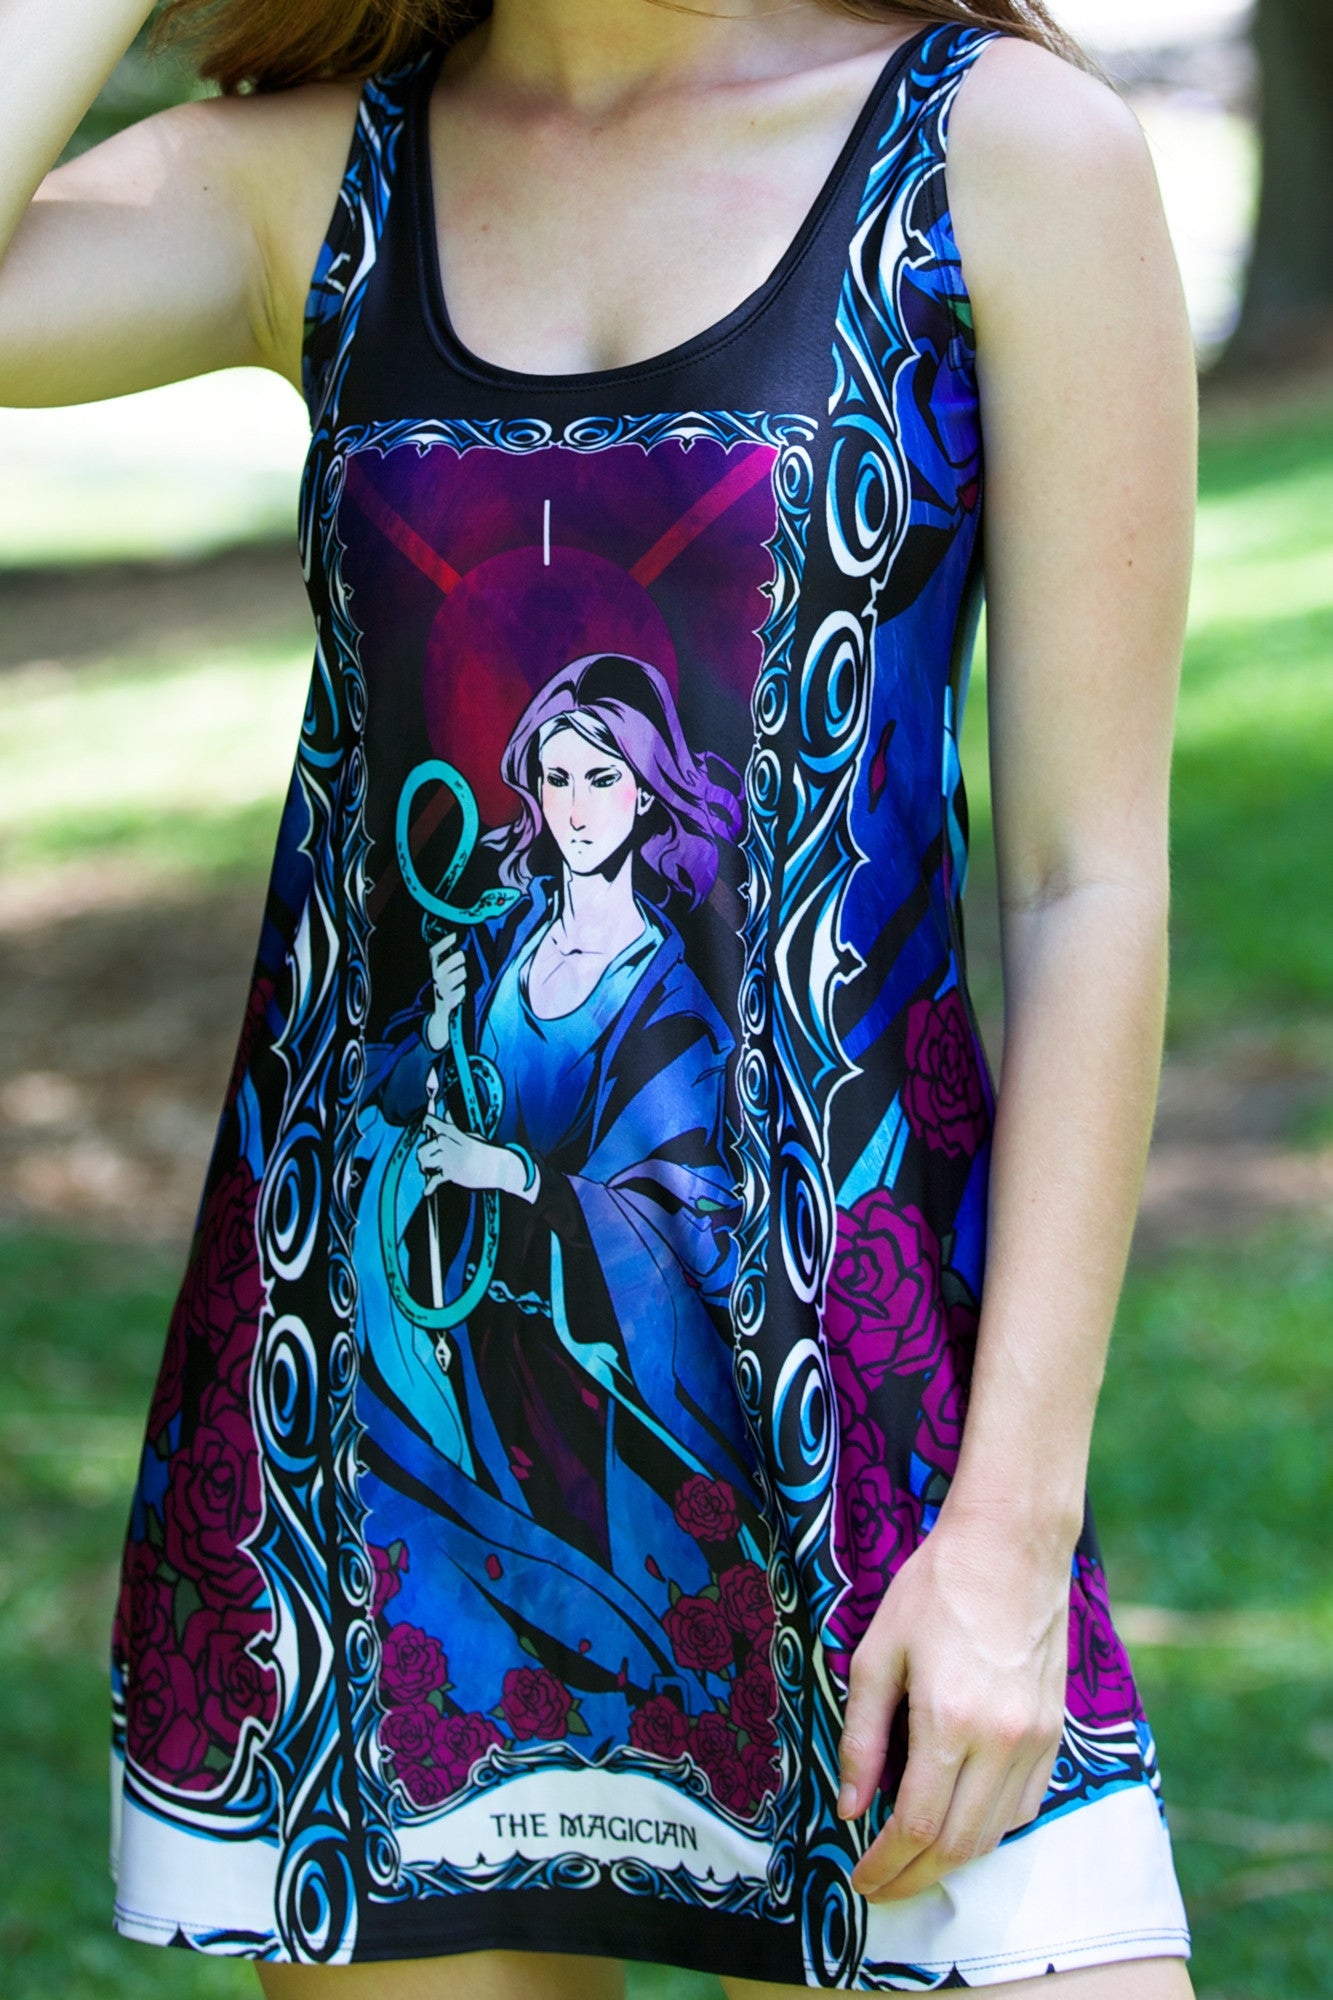 The Magician A-Line Dress